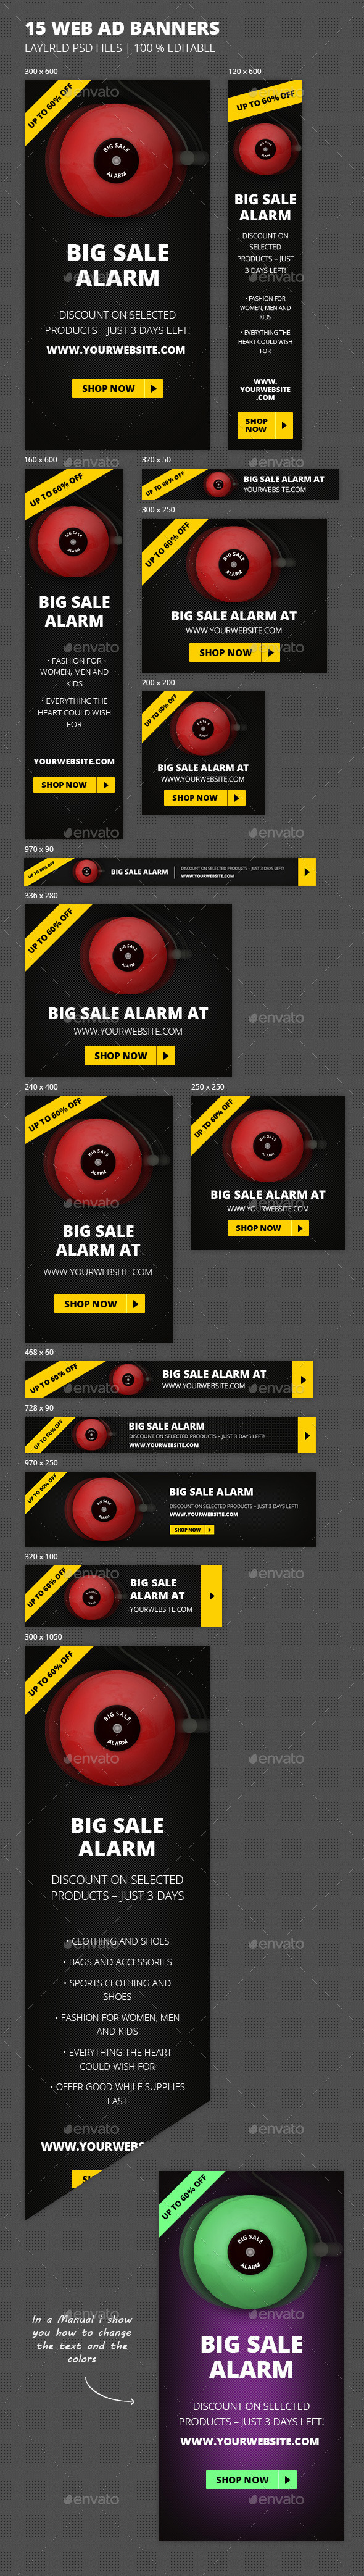 Online Marketing 'Sale Alarm' Web Banners - Banners & Ads Web Elements